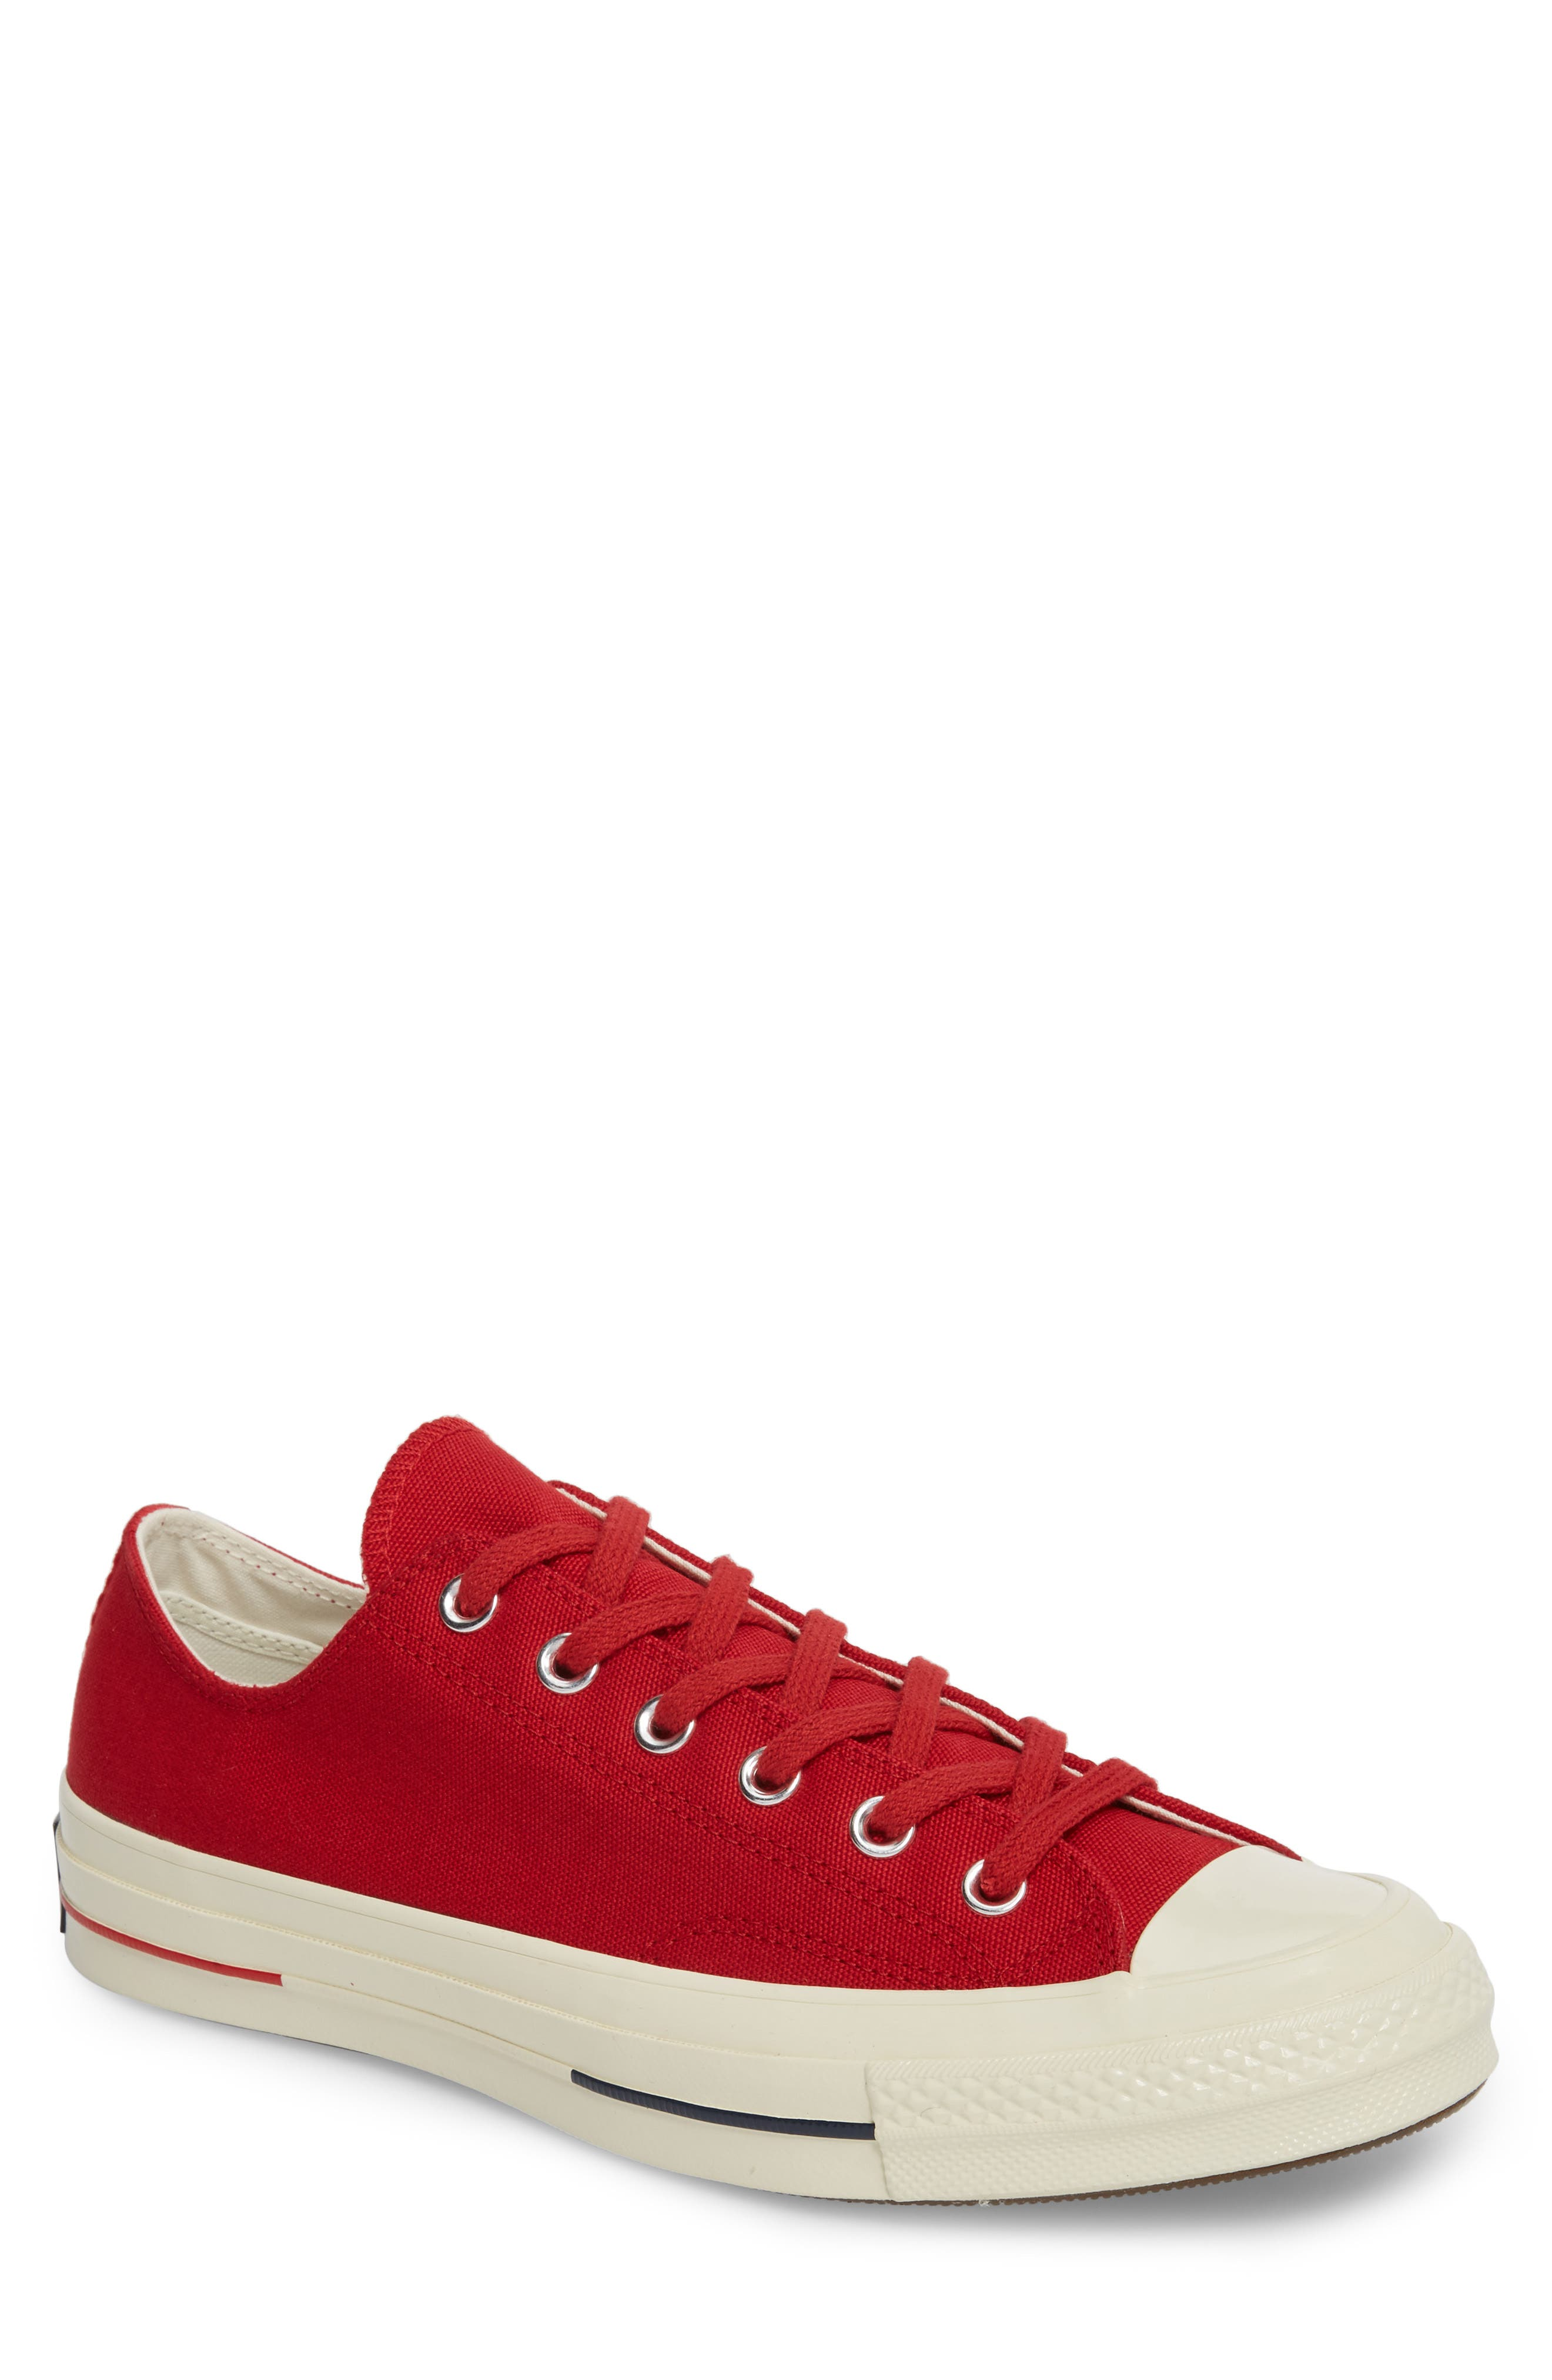 Chuck Taylor<sup>®</sup> All Star<sup>®</sup> '70s Heritage Low Top Sneaker,                         Main,                         color, 600